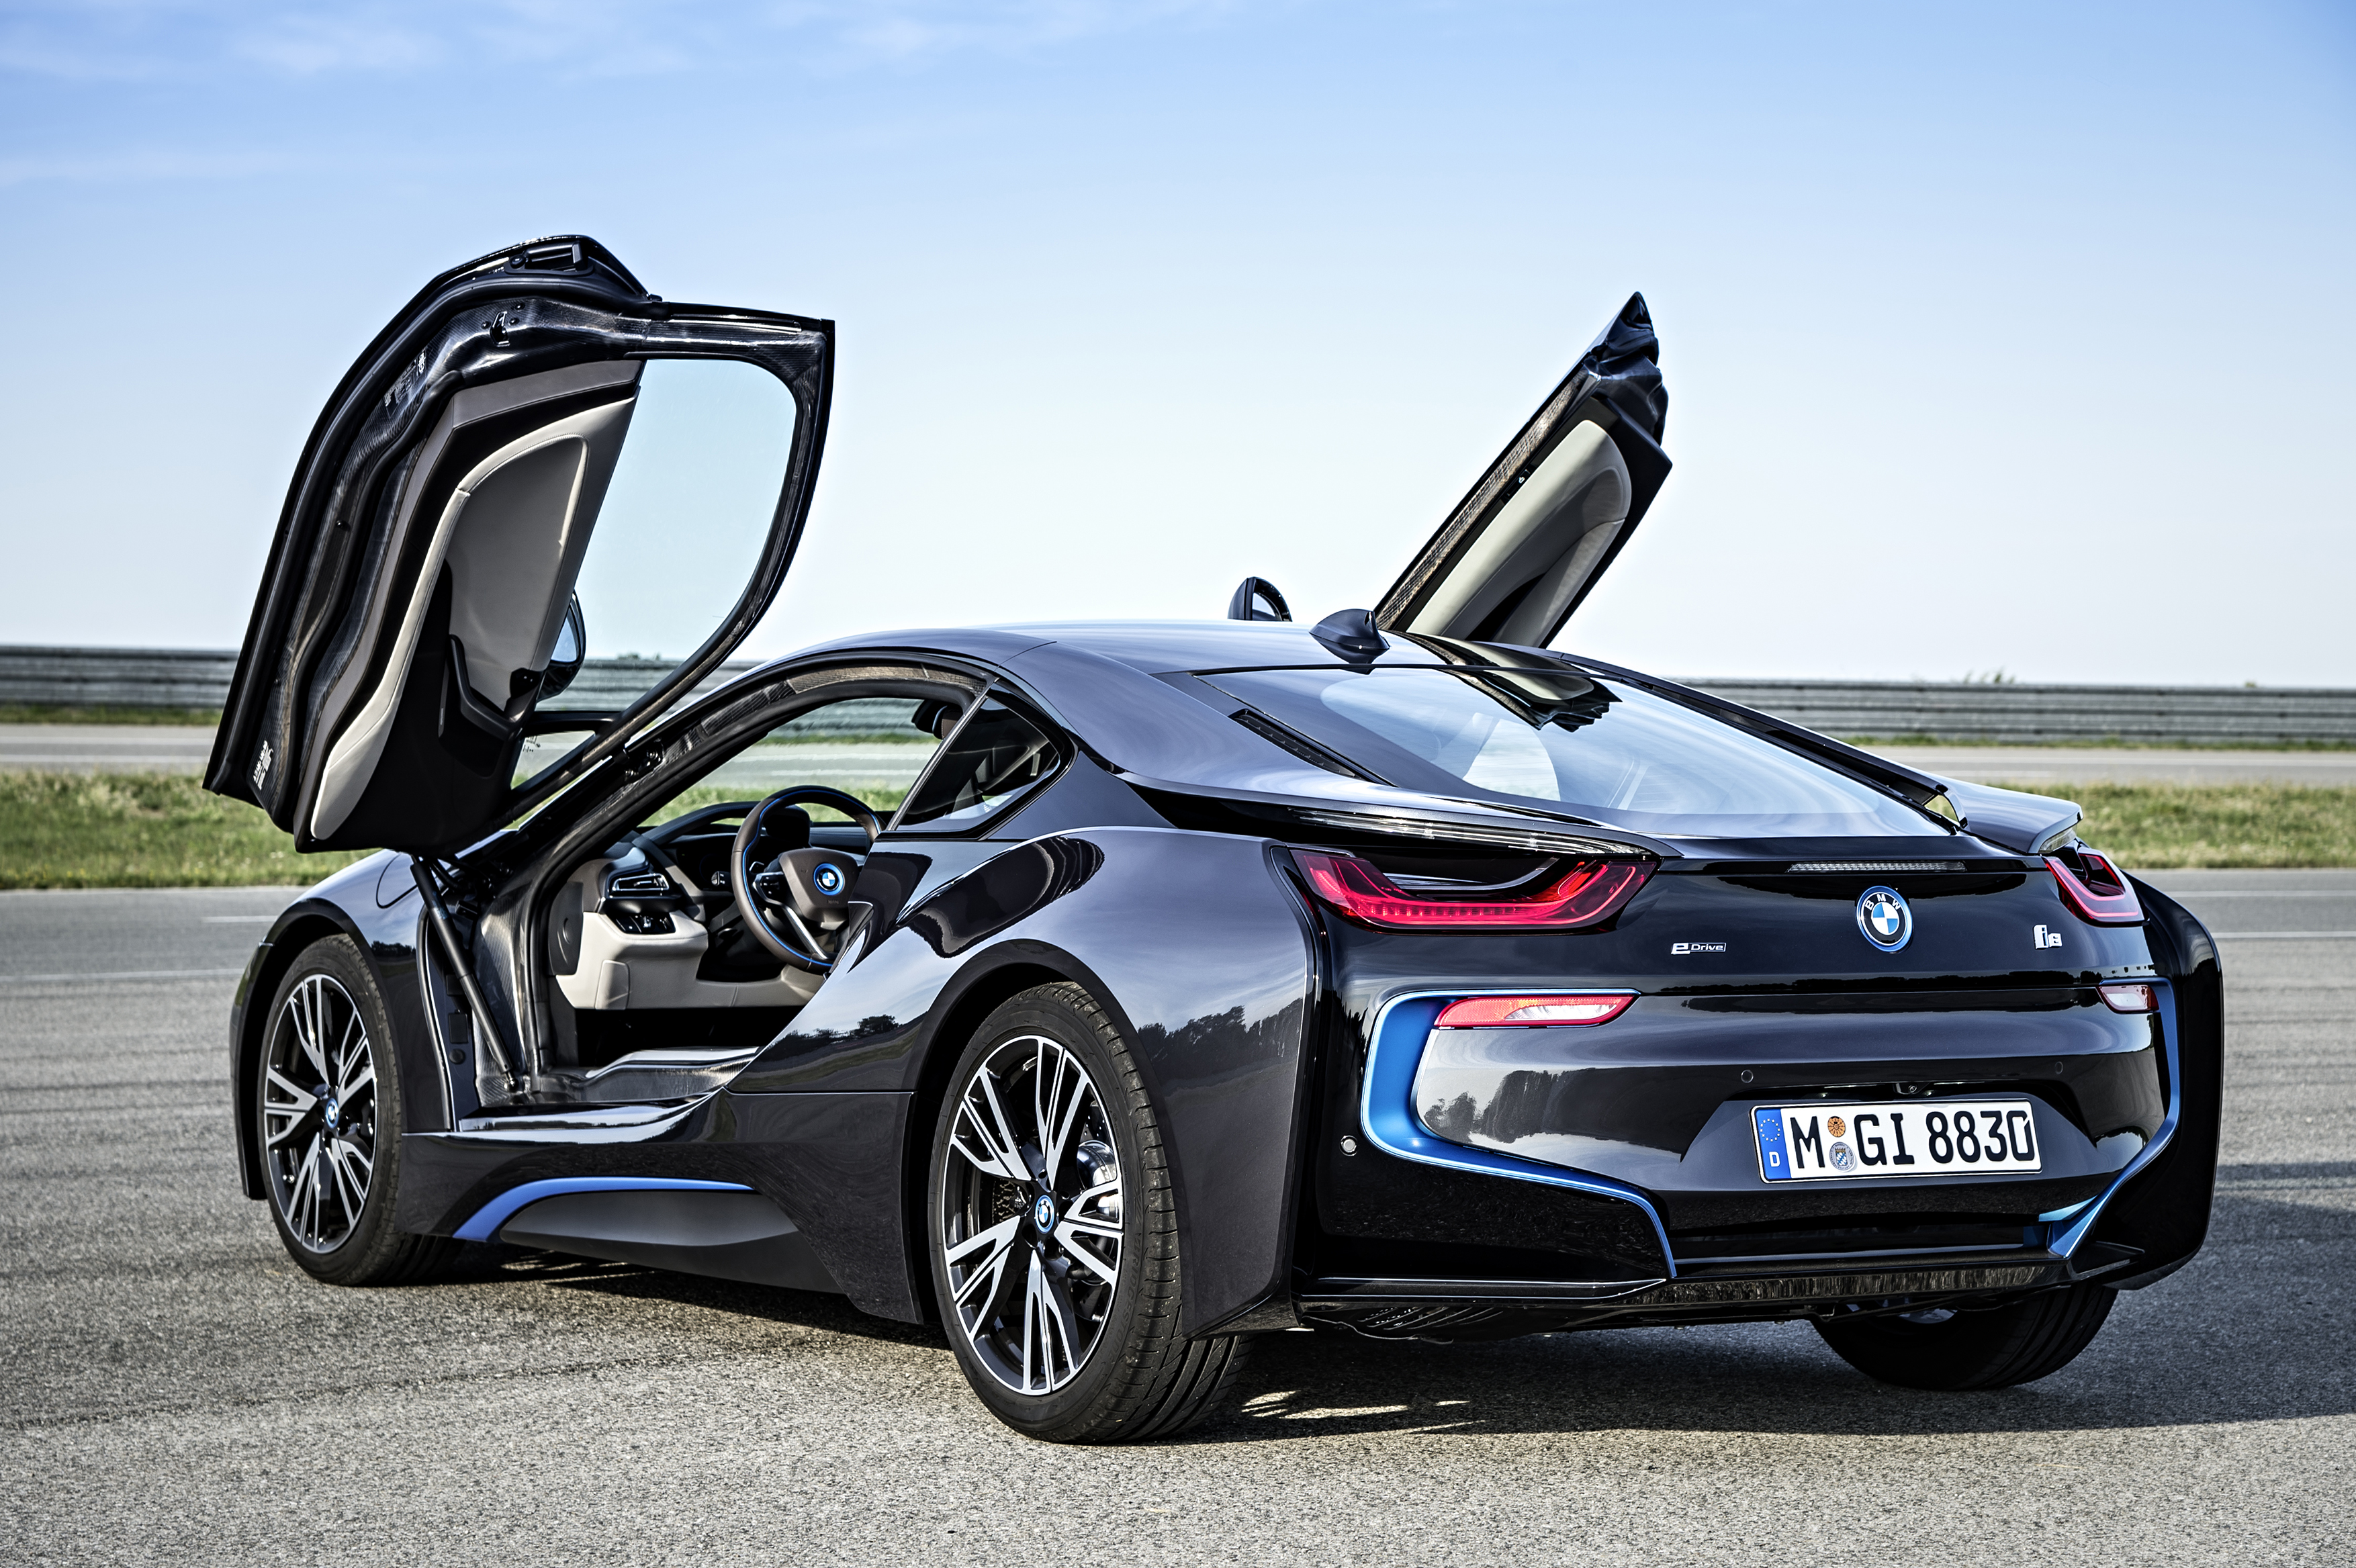 Bmw I8 Production Version With Gullwing Doors Open Bmw I8 Forum